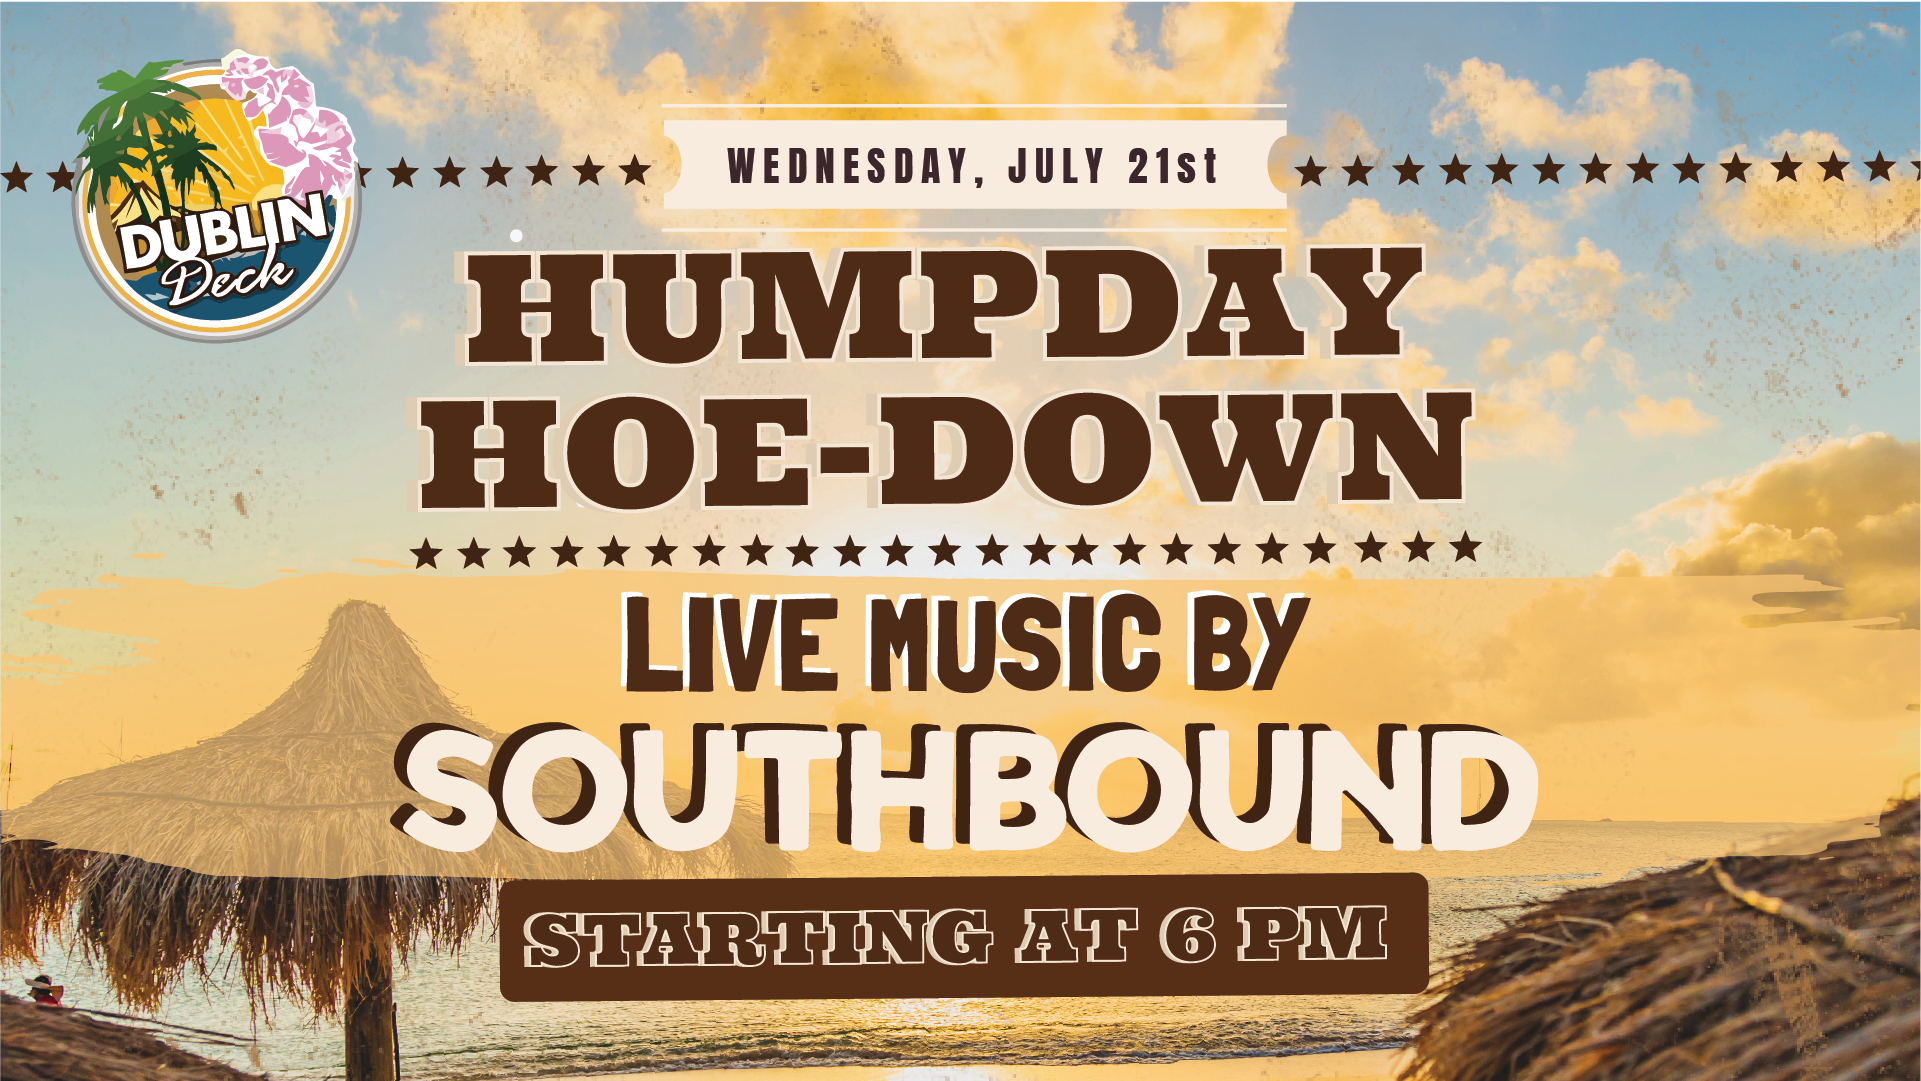 Wednesday July 21st with Southbound 6:00 PM